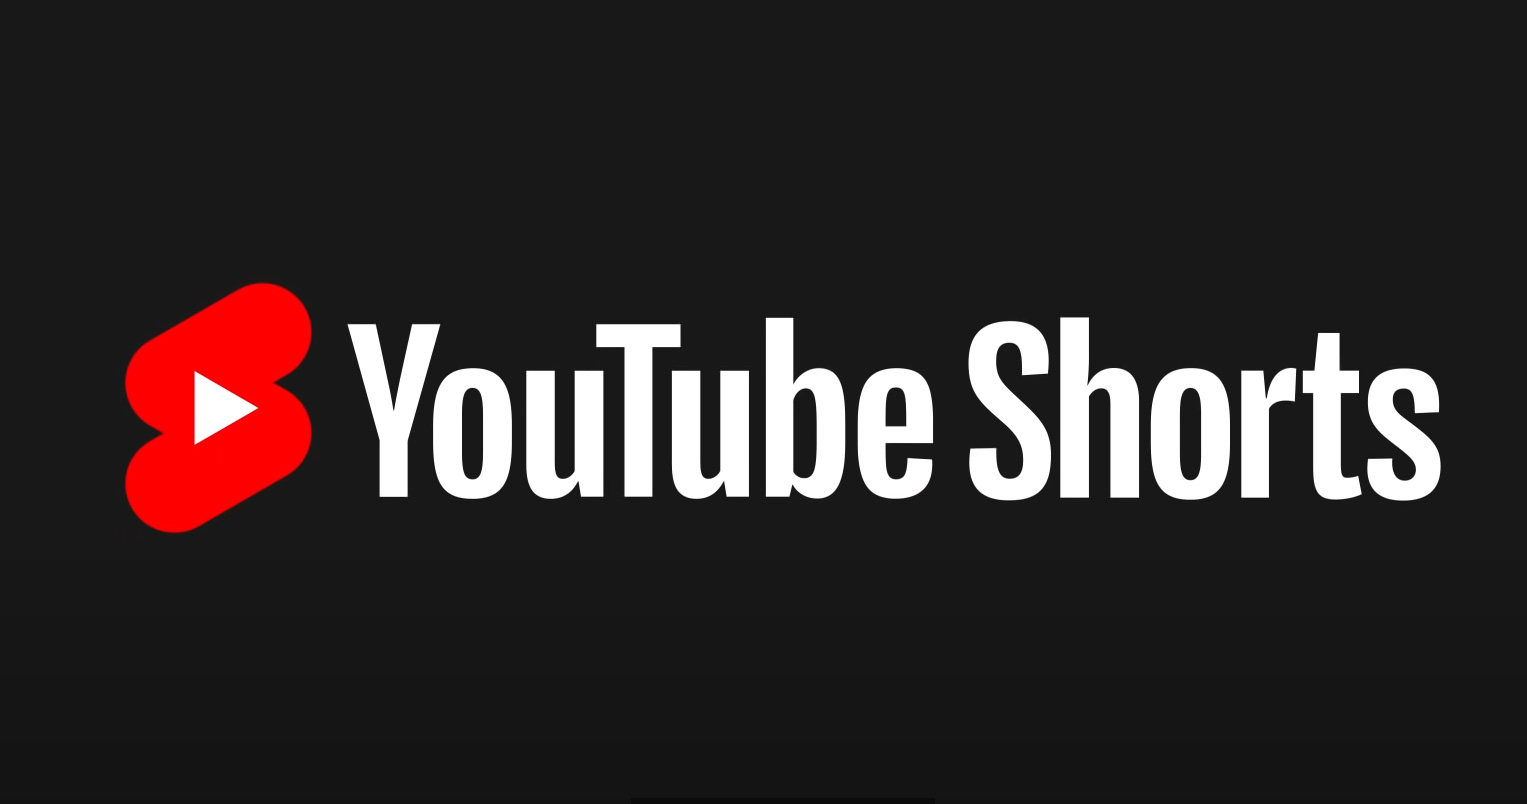 YouTube rewards shorts with 100 million US dollars - also in Germany